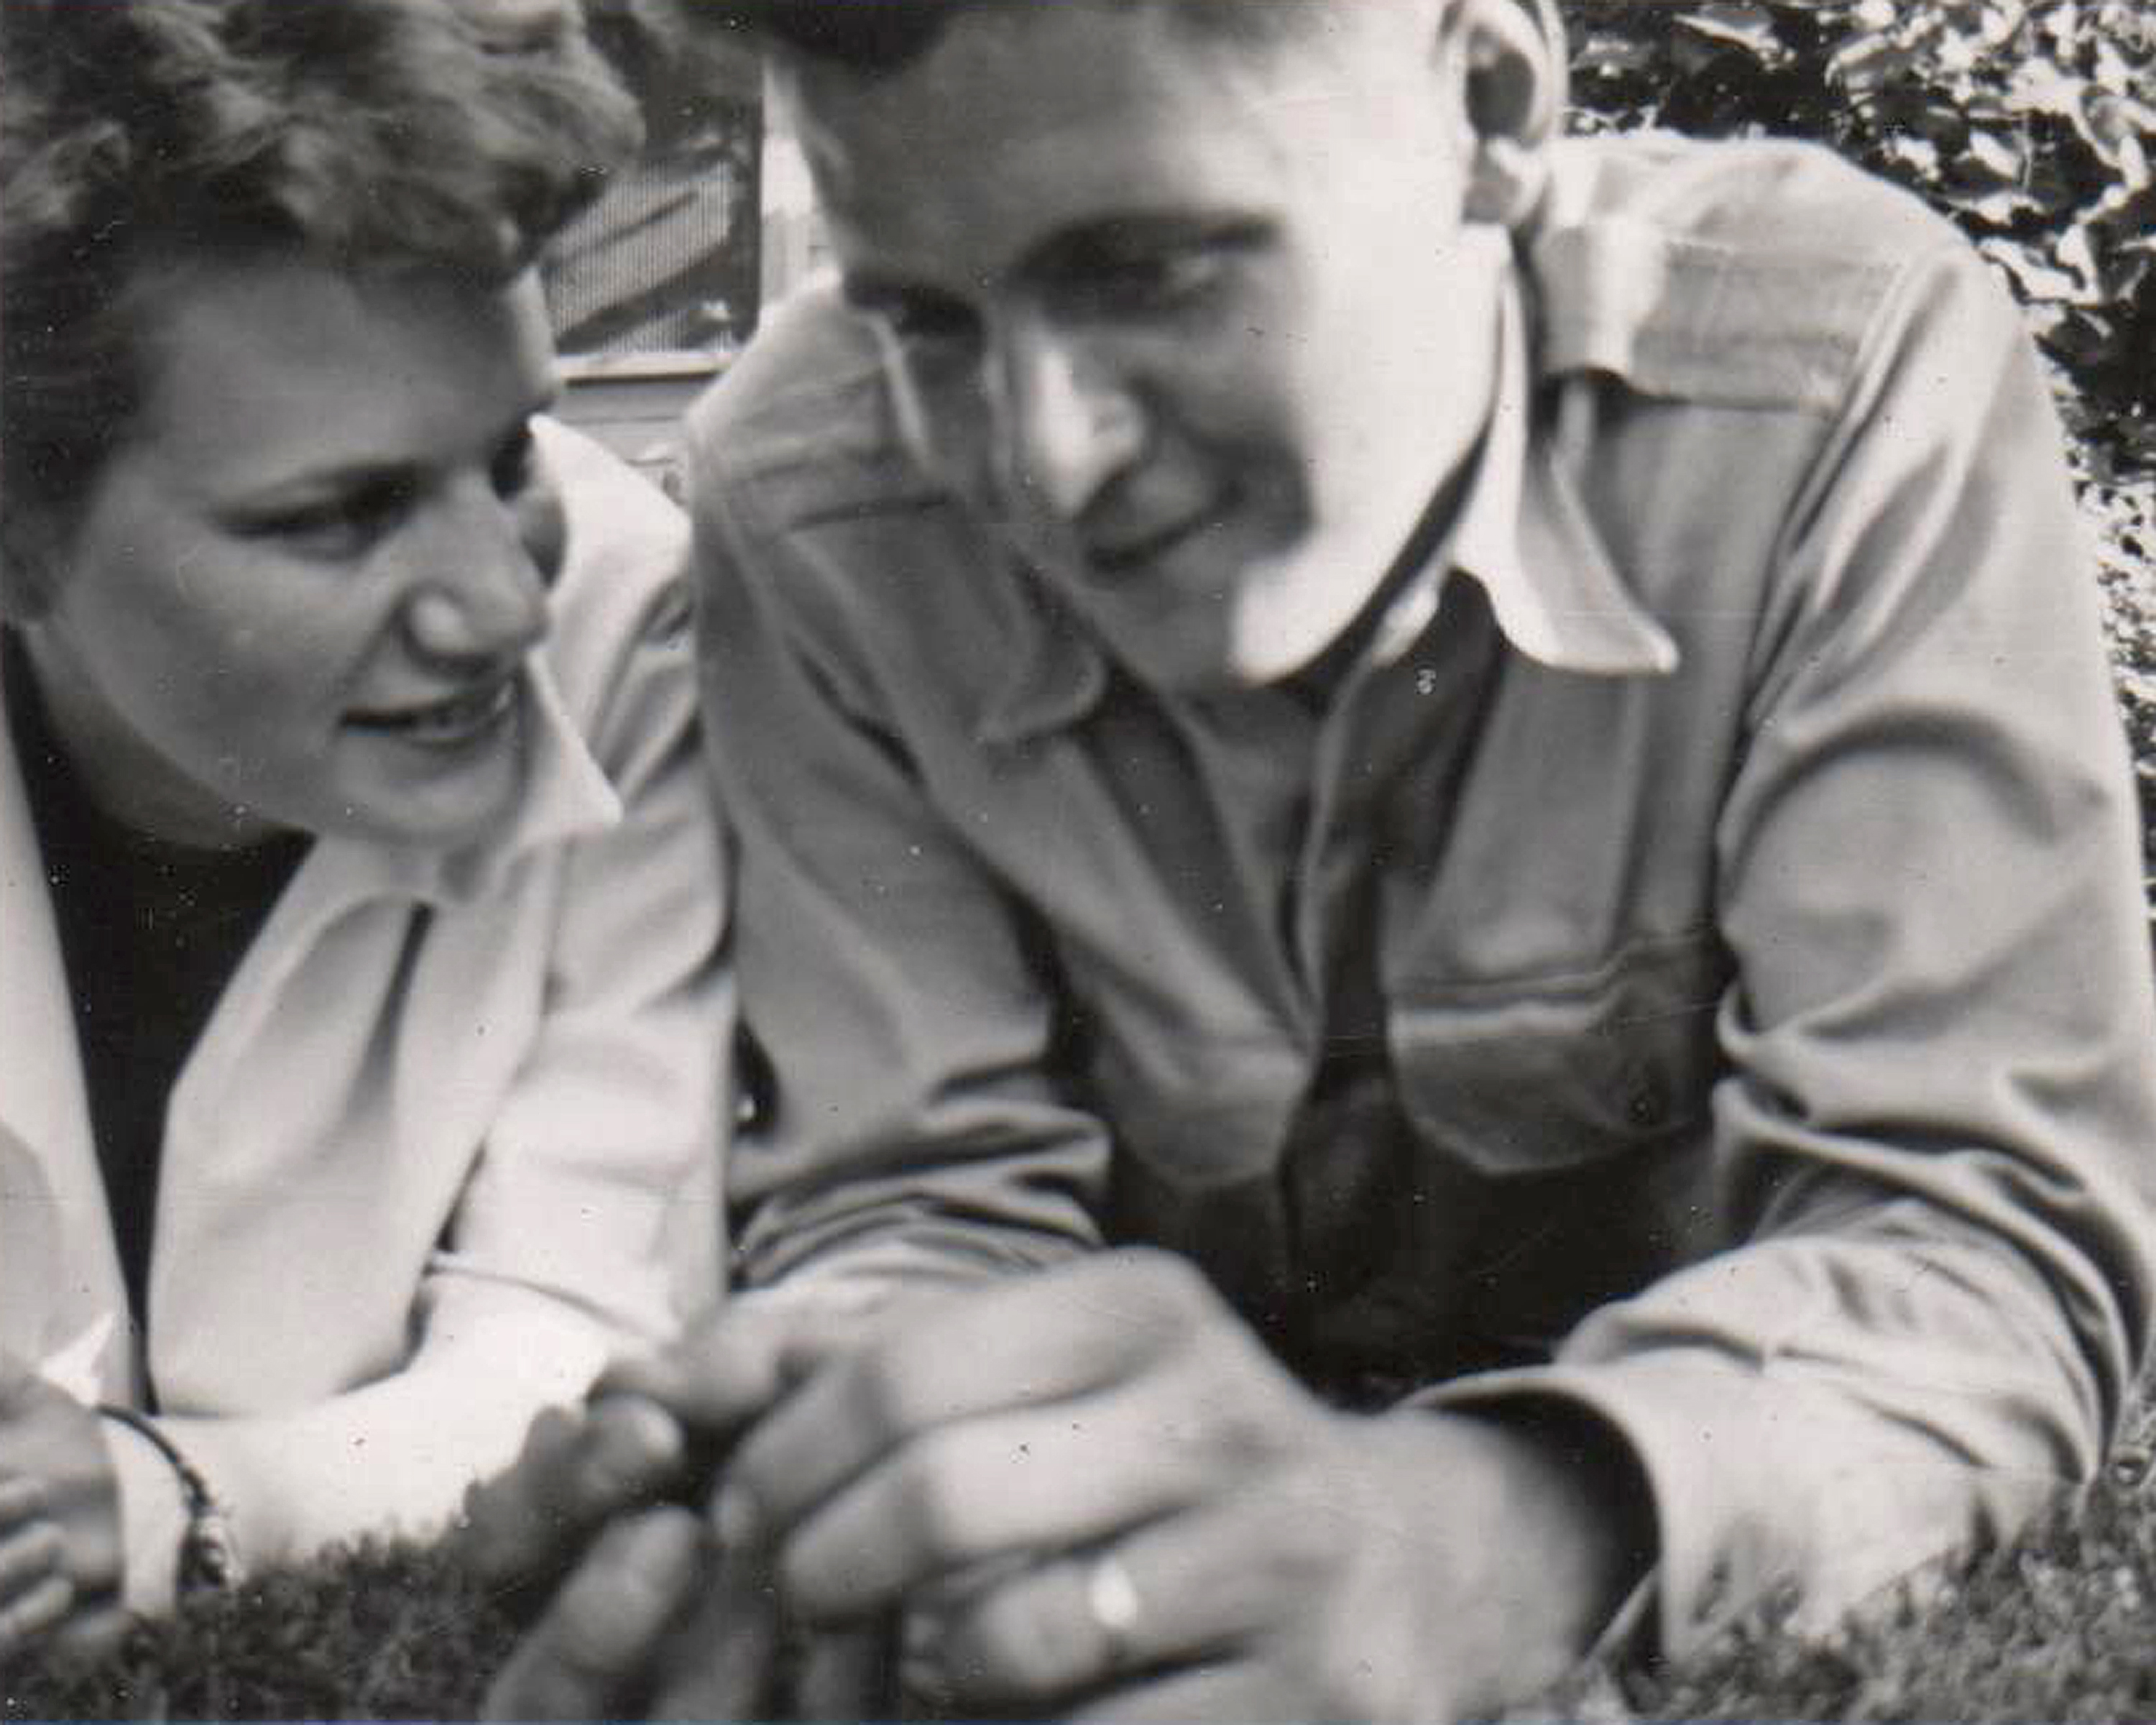 Jan and Art Warner - This is one of my favorite pictures of Jan and Art. I think it is from when they were dating. They were married in 1950, so that helps date this to around that time. They were inseparable.